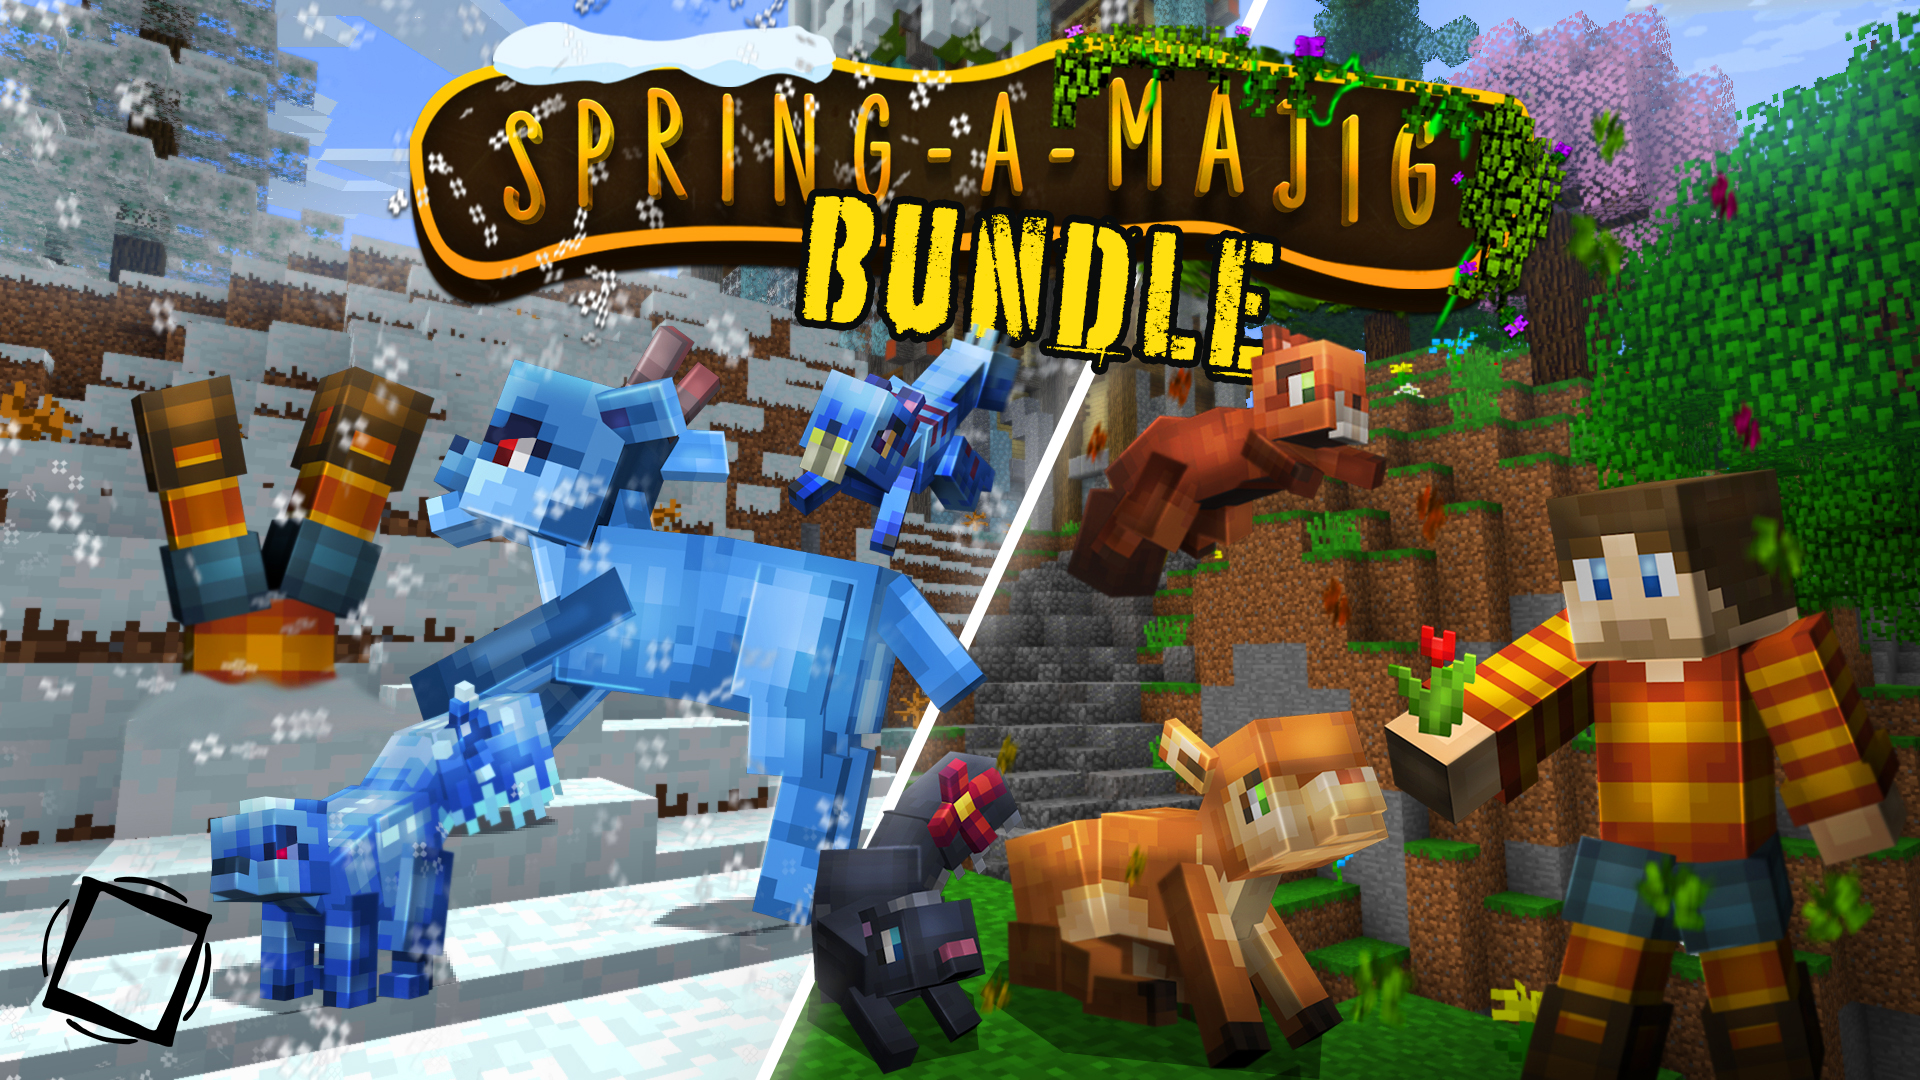 Springamajig Bundle on the Minecraft Marketplace by The Misfit Society